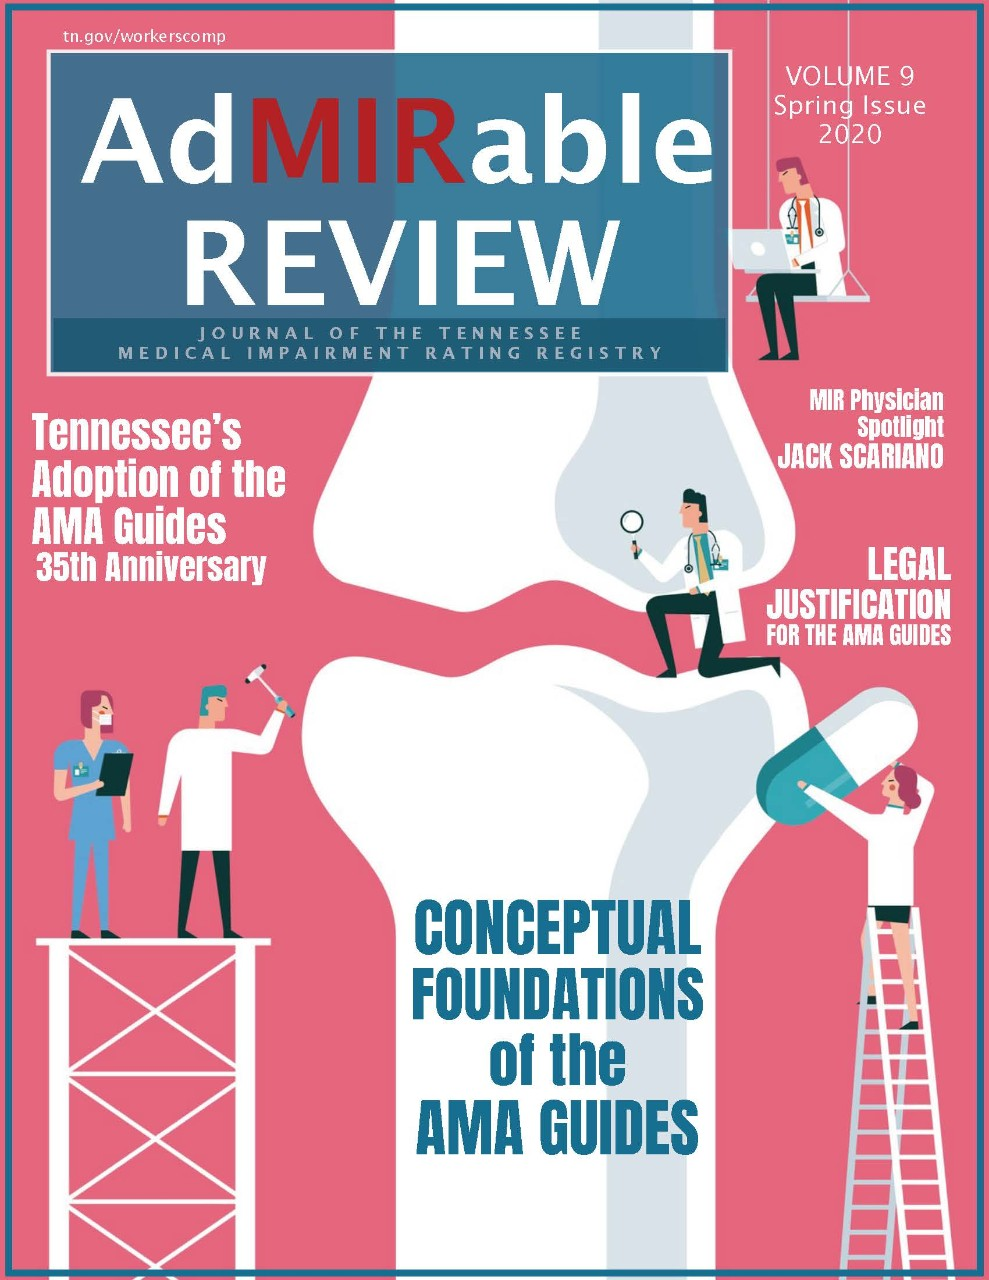 Cover image to the Spring 2020 AdMIRable Review issue